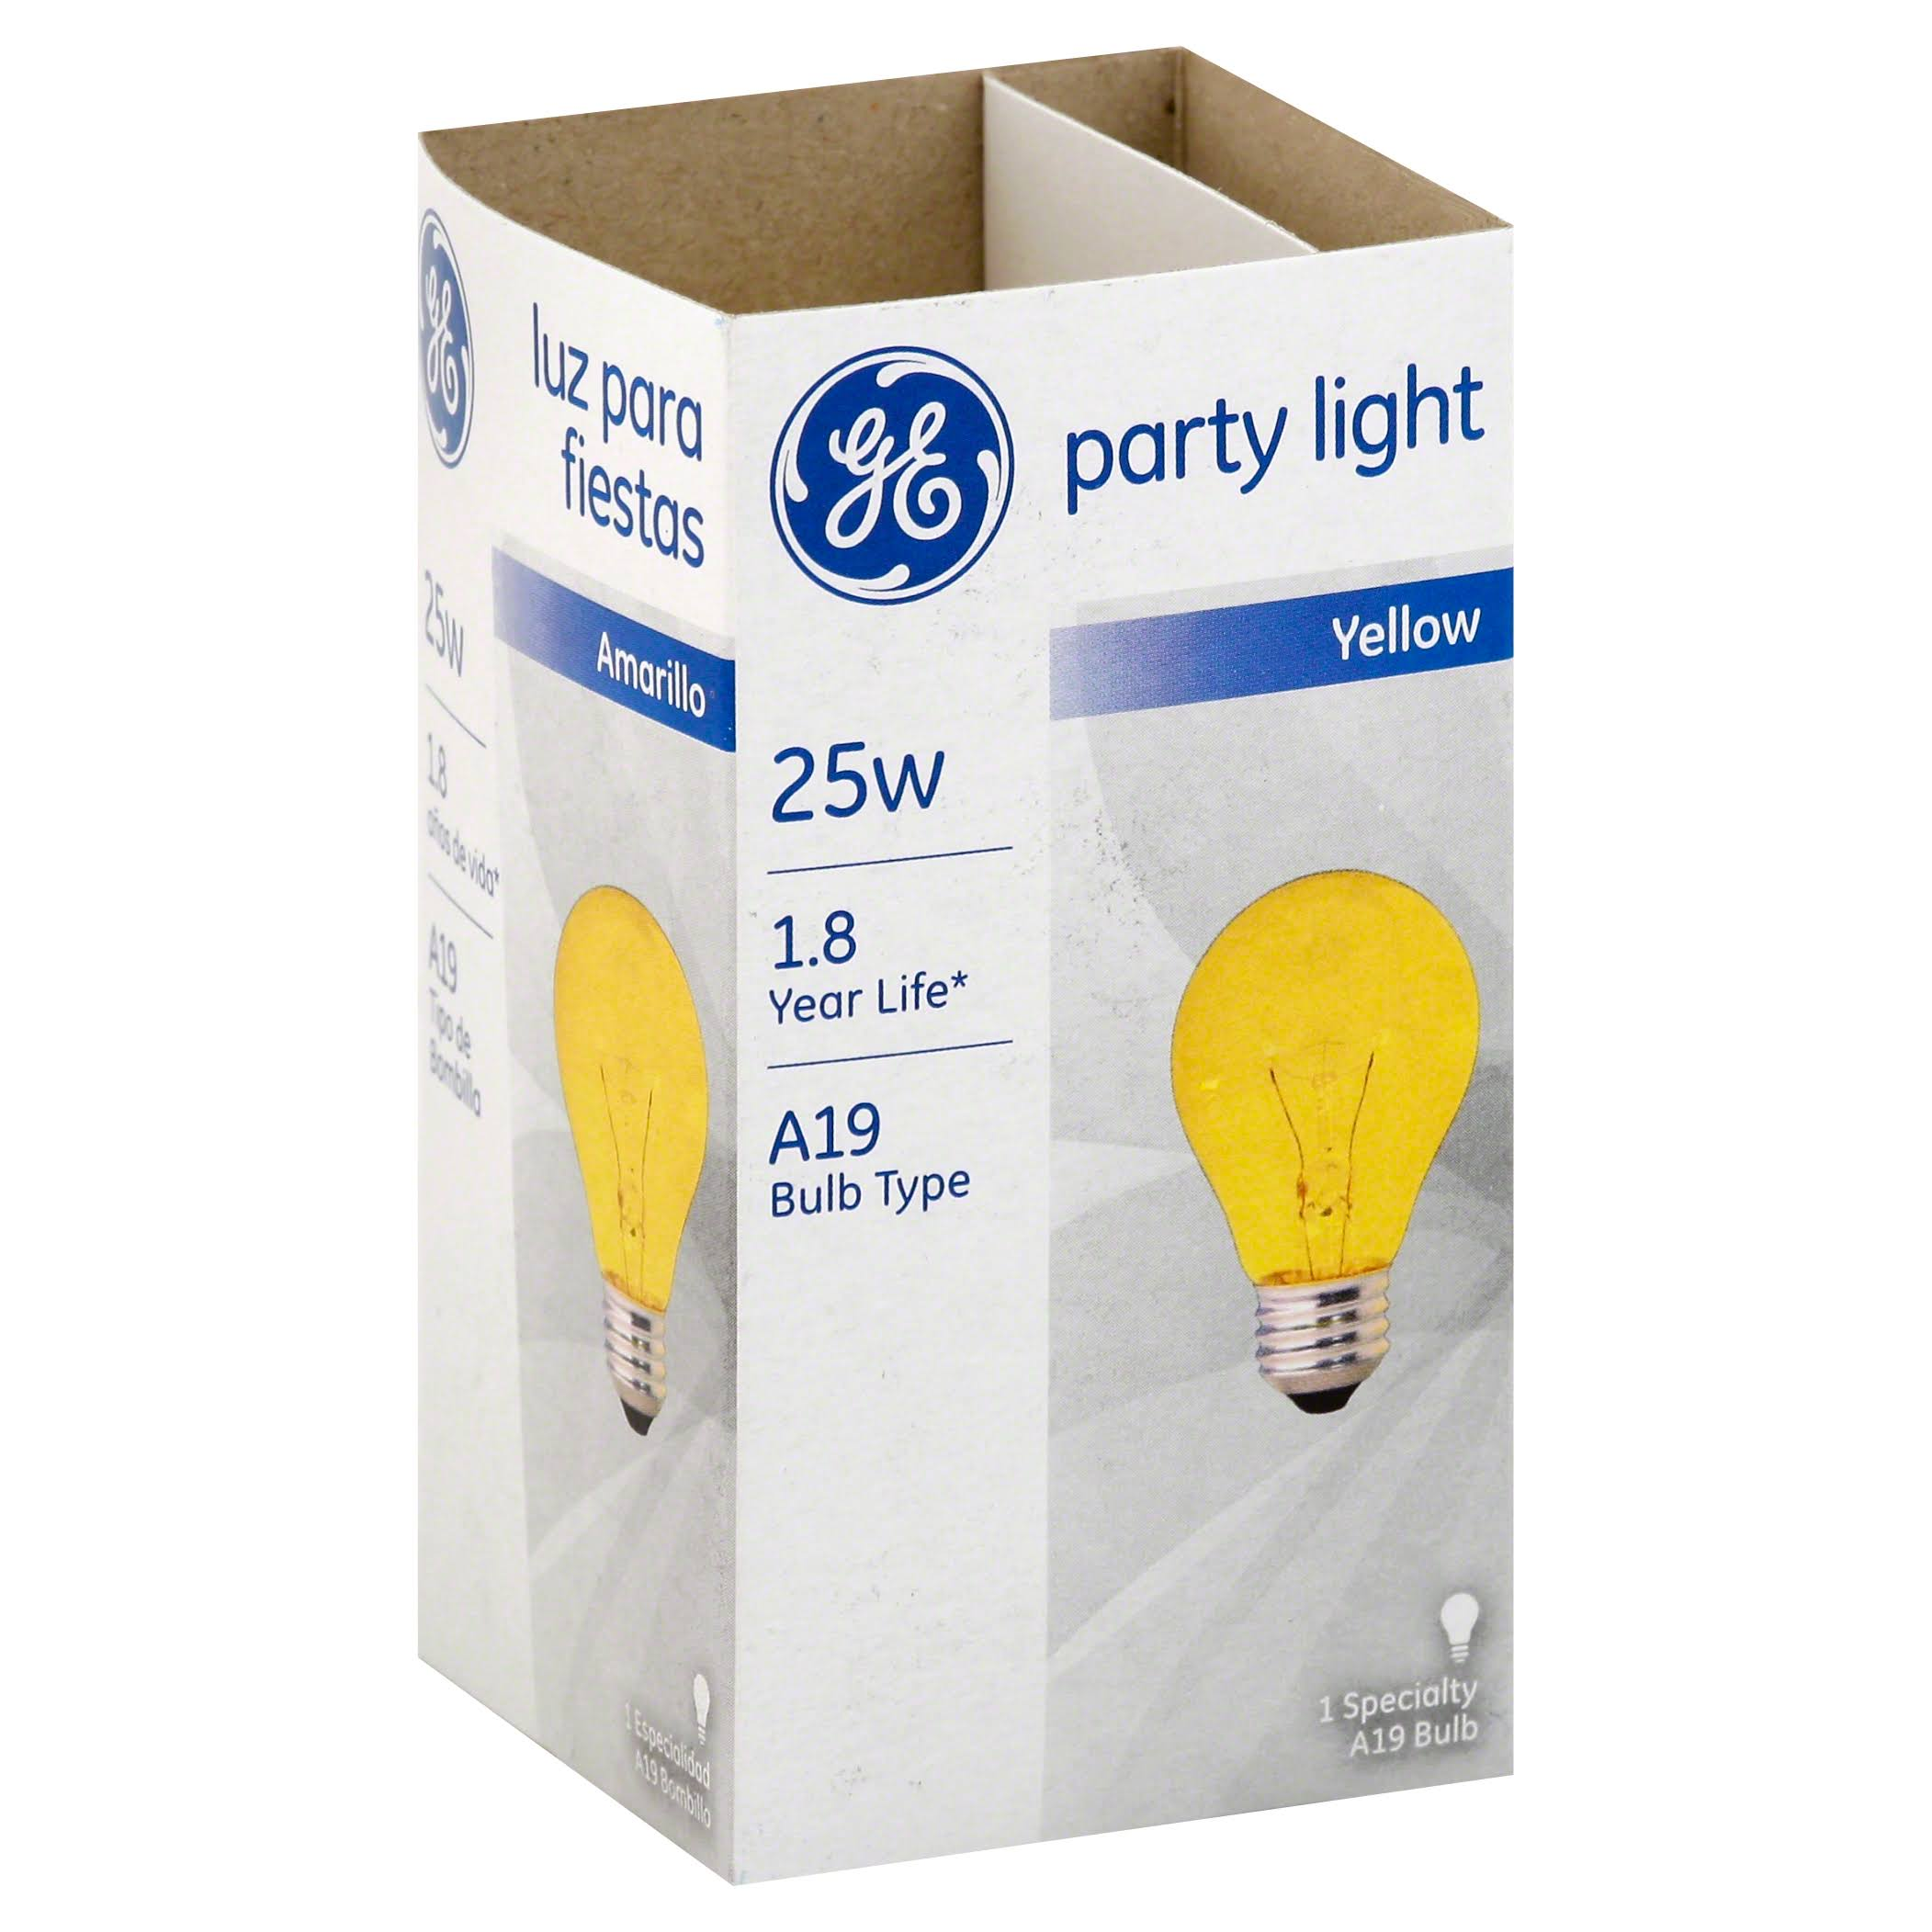 GE Lighting Yellow Light Bulb - 25W